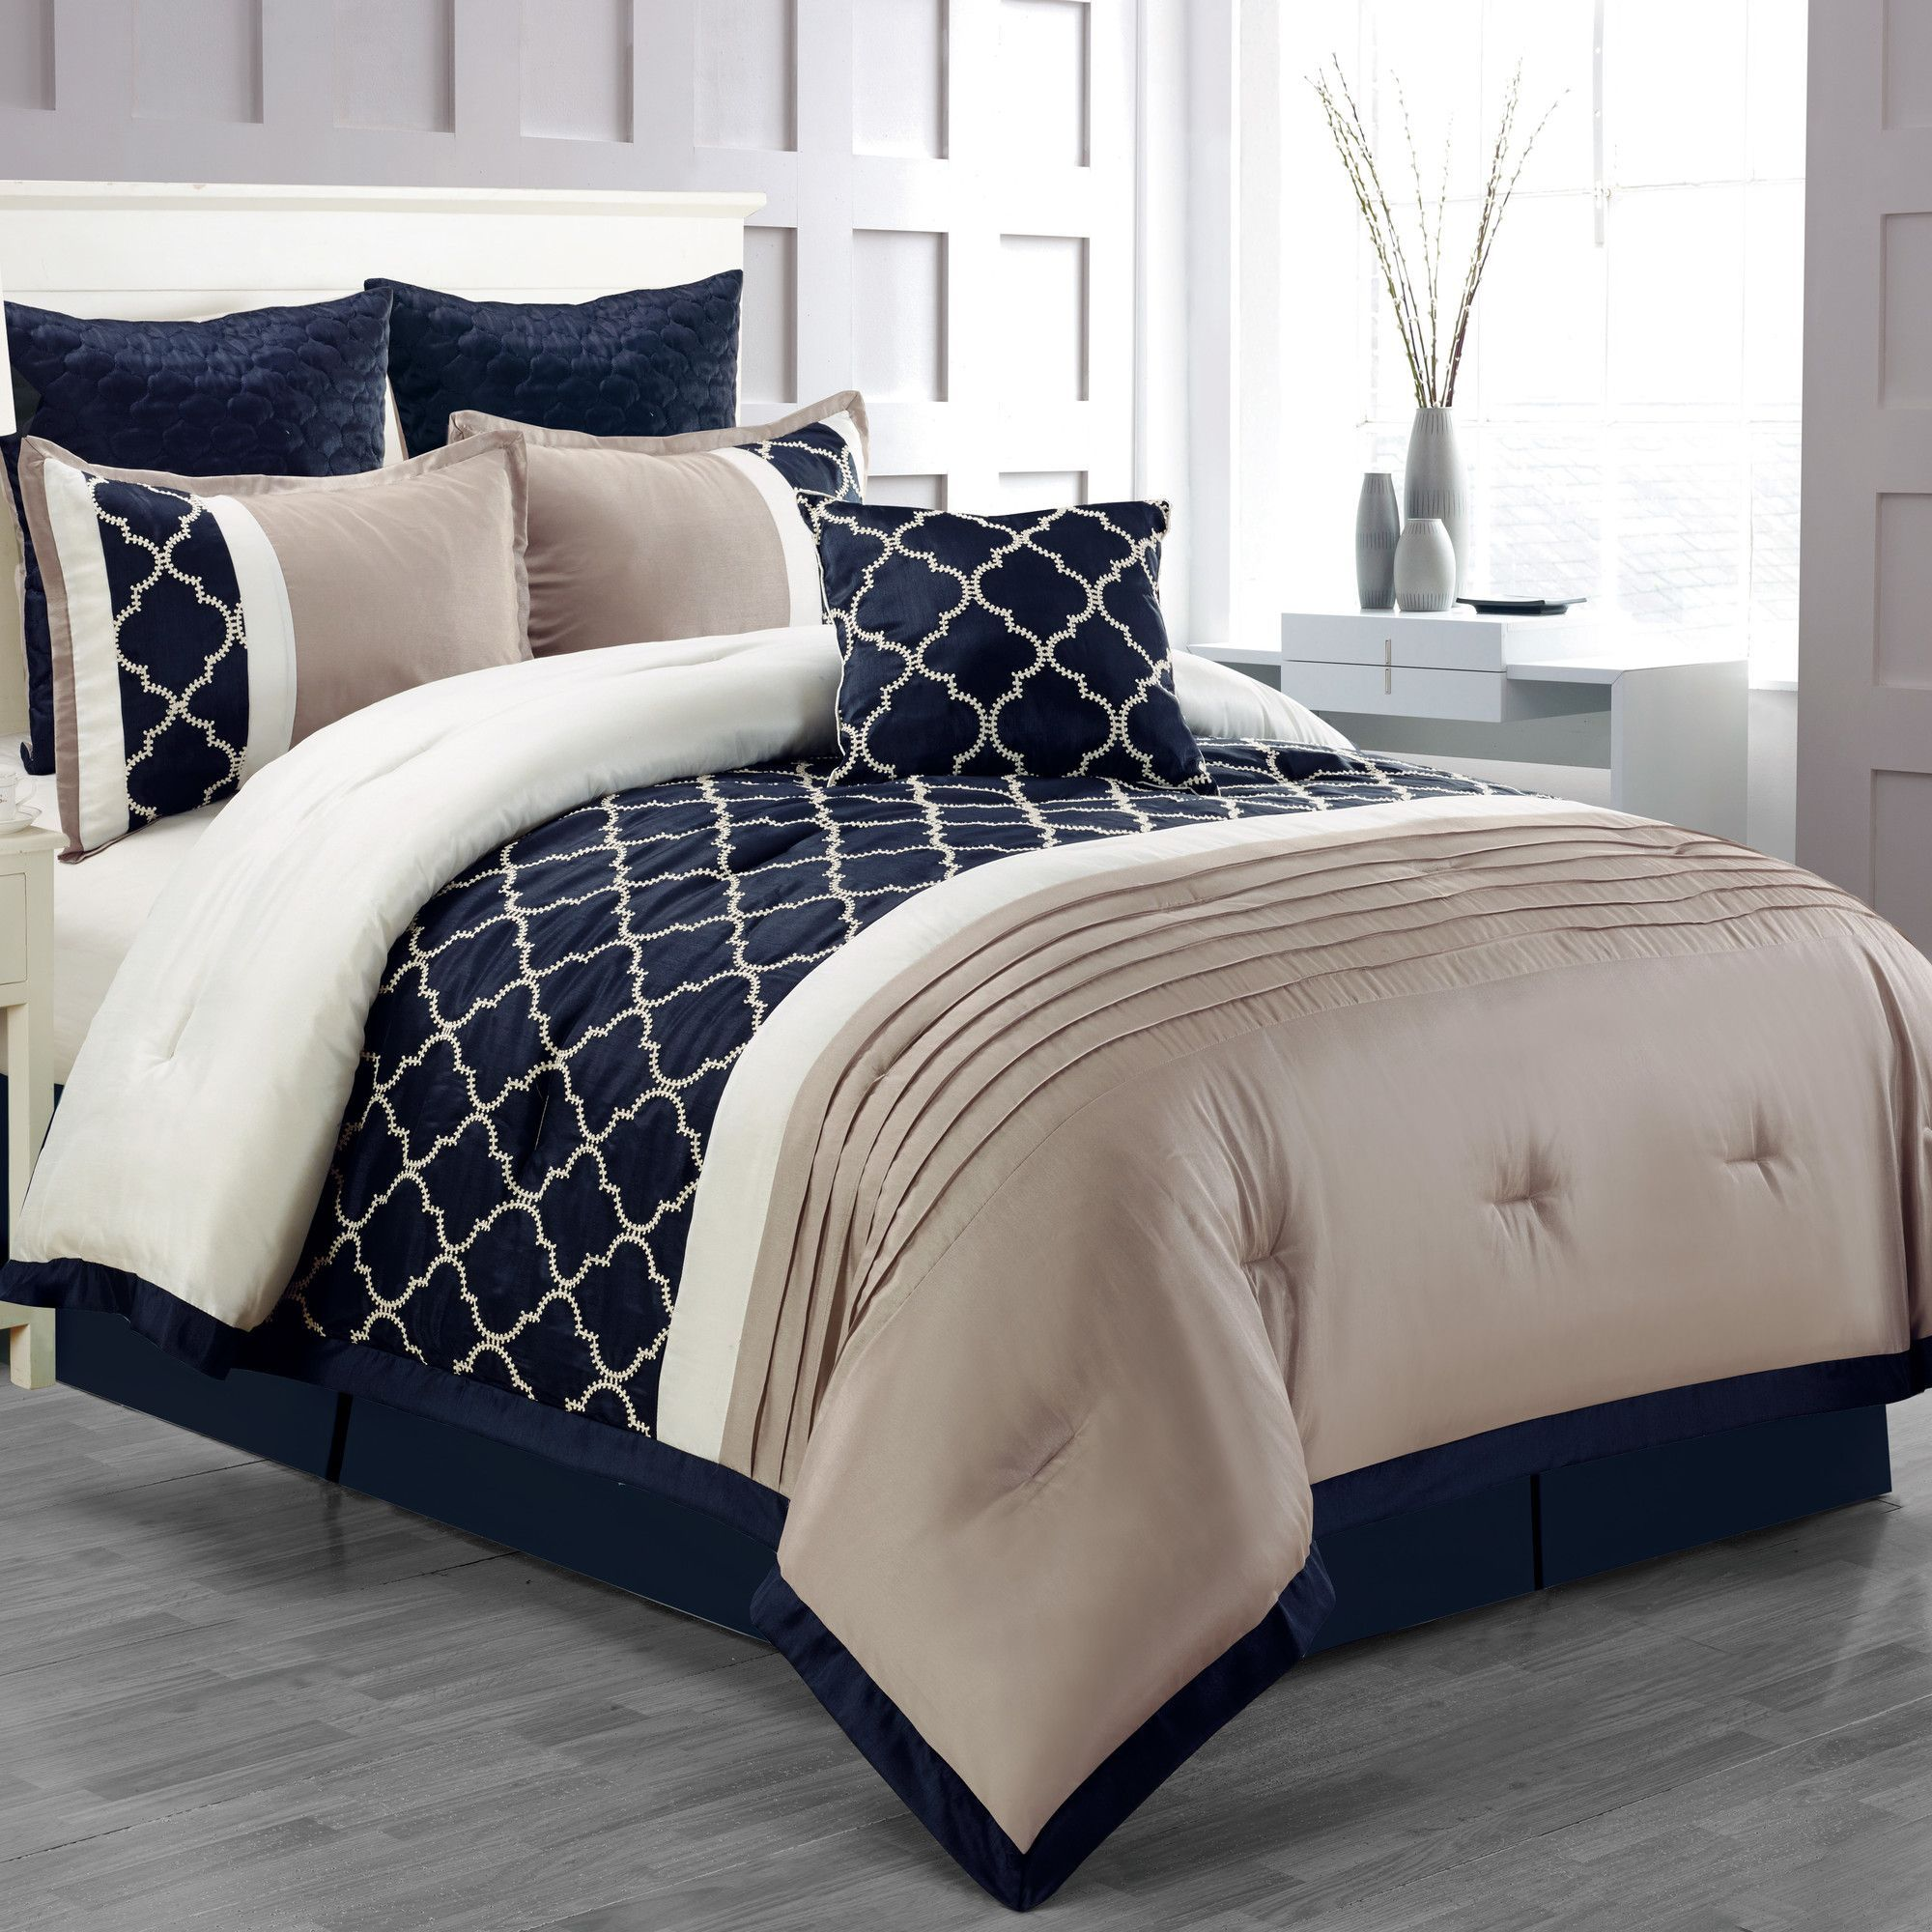 Shop Wayfair For Bedding Sets To Match Every Style And Budget